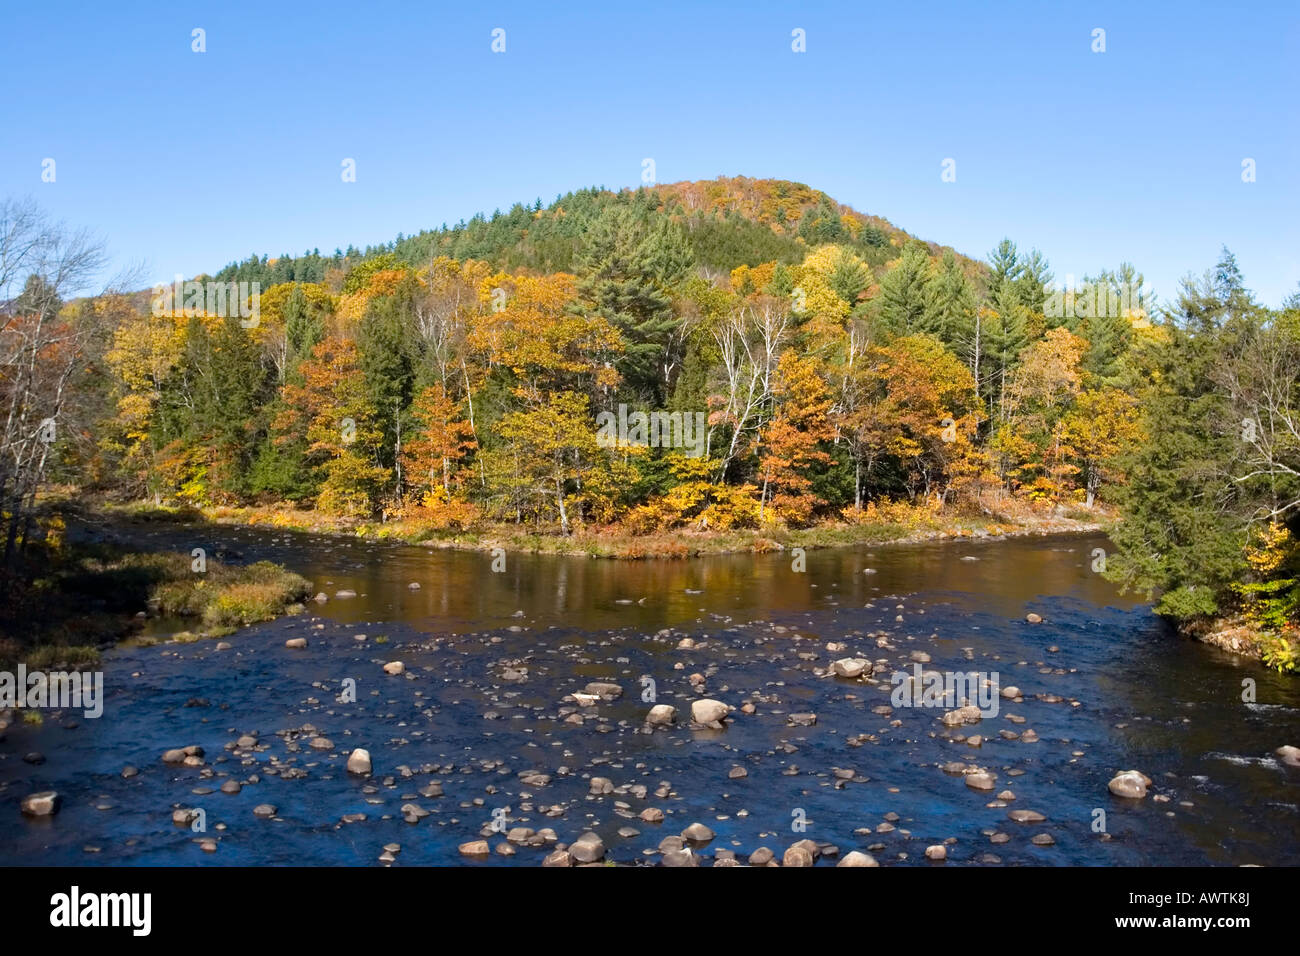 East and west branches of the Sacandaga River joining, Adirondack Mountains, New York, United States - Stock Image